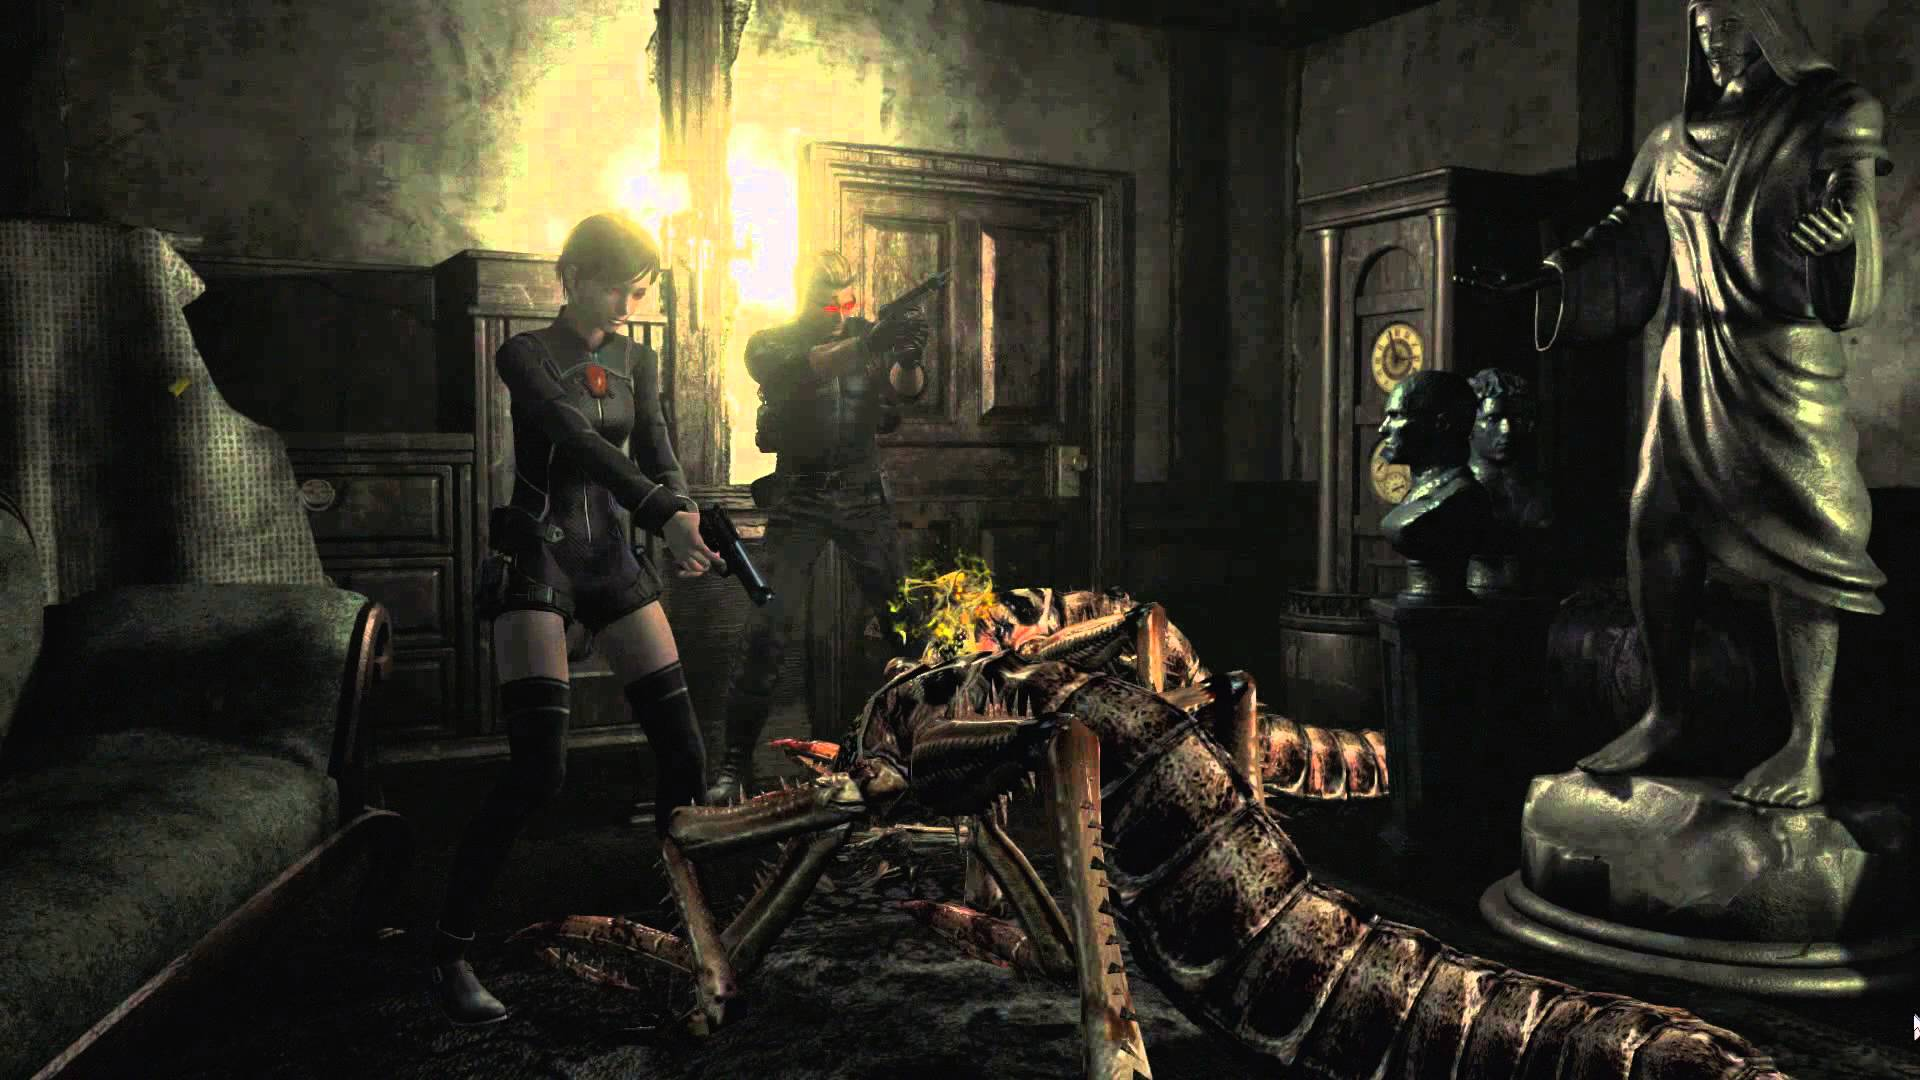 Resident Evil 2 Remake Is Not a Remake According to Capcom